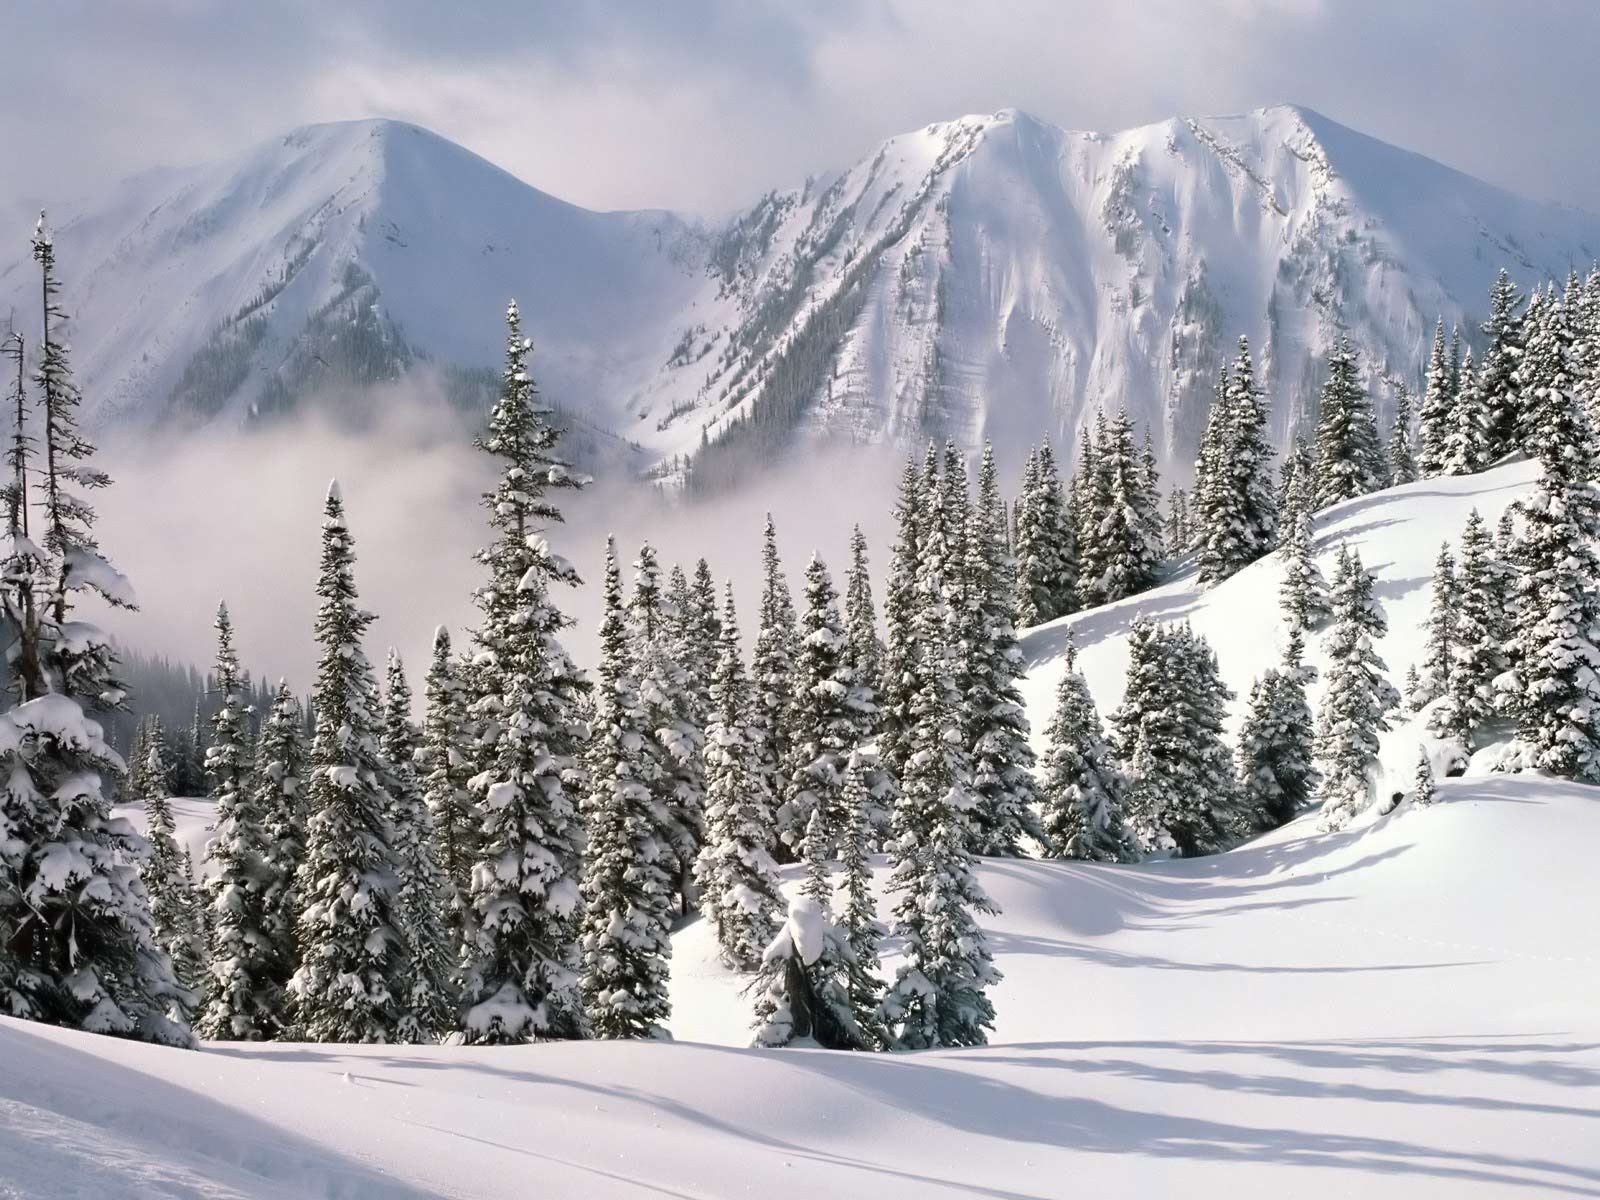 Helga Weaver: Winter Scene Hd